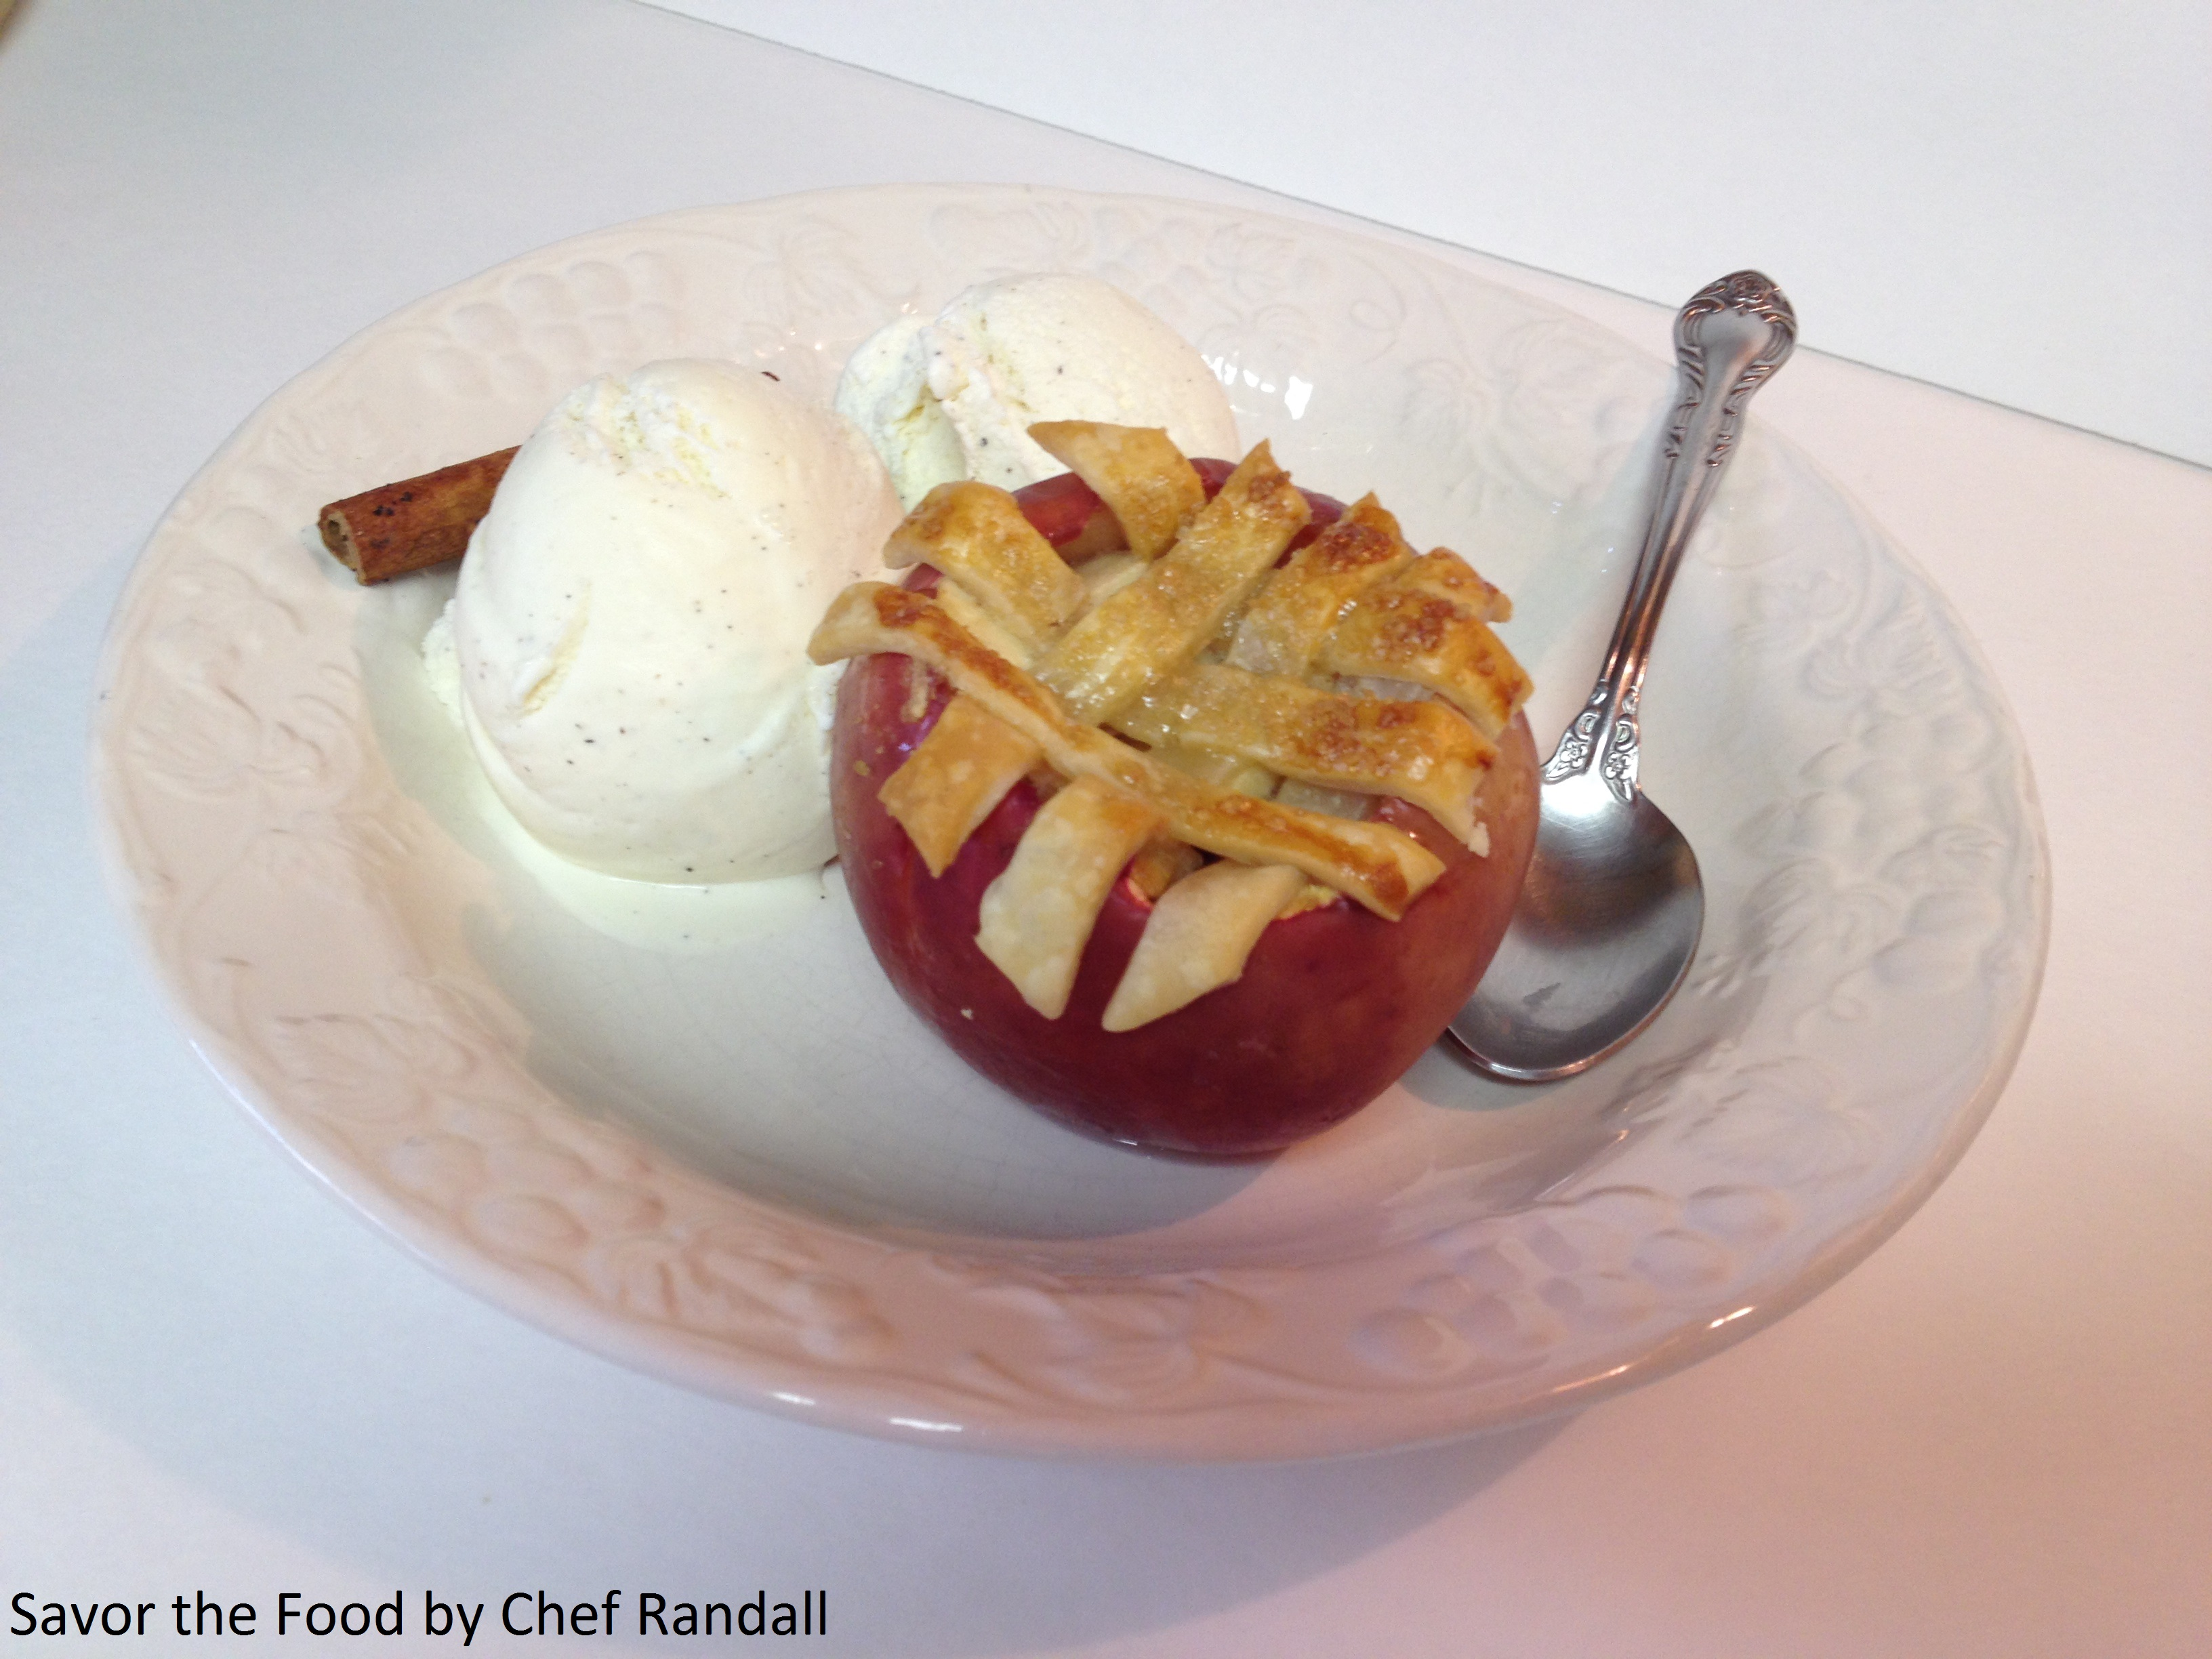 A Baked Apple Apple Pie with a side of real vanilla ice cream